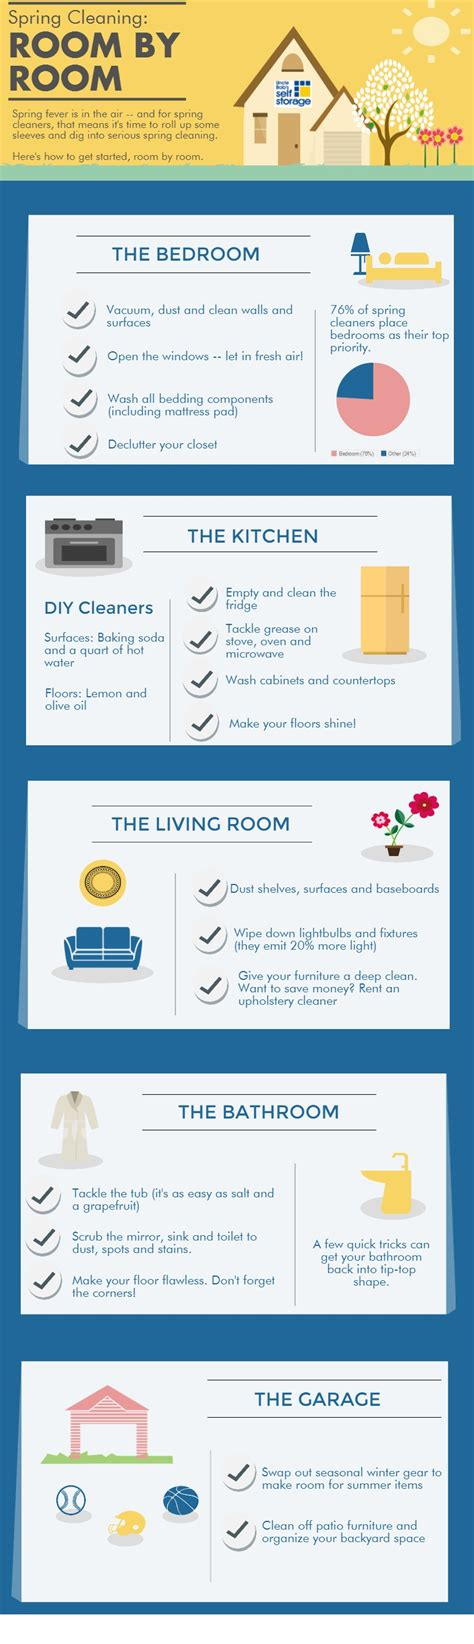 spring cleaning tips for bedroom spring cleaning a room by room checklist life storage blog